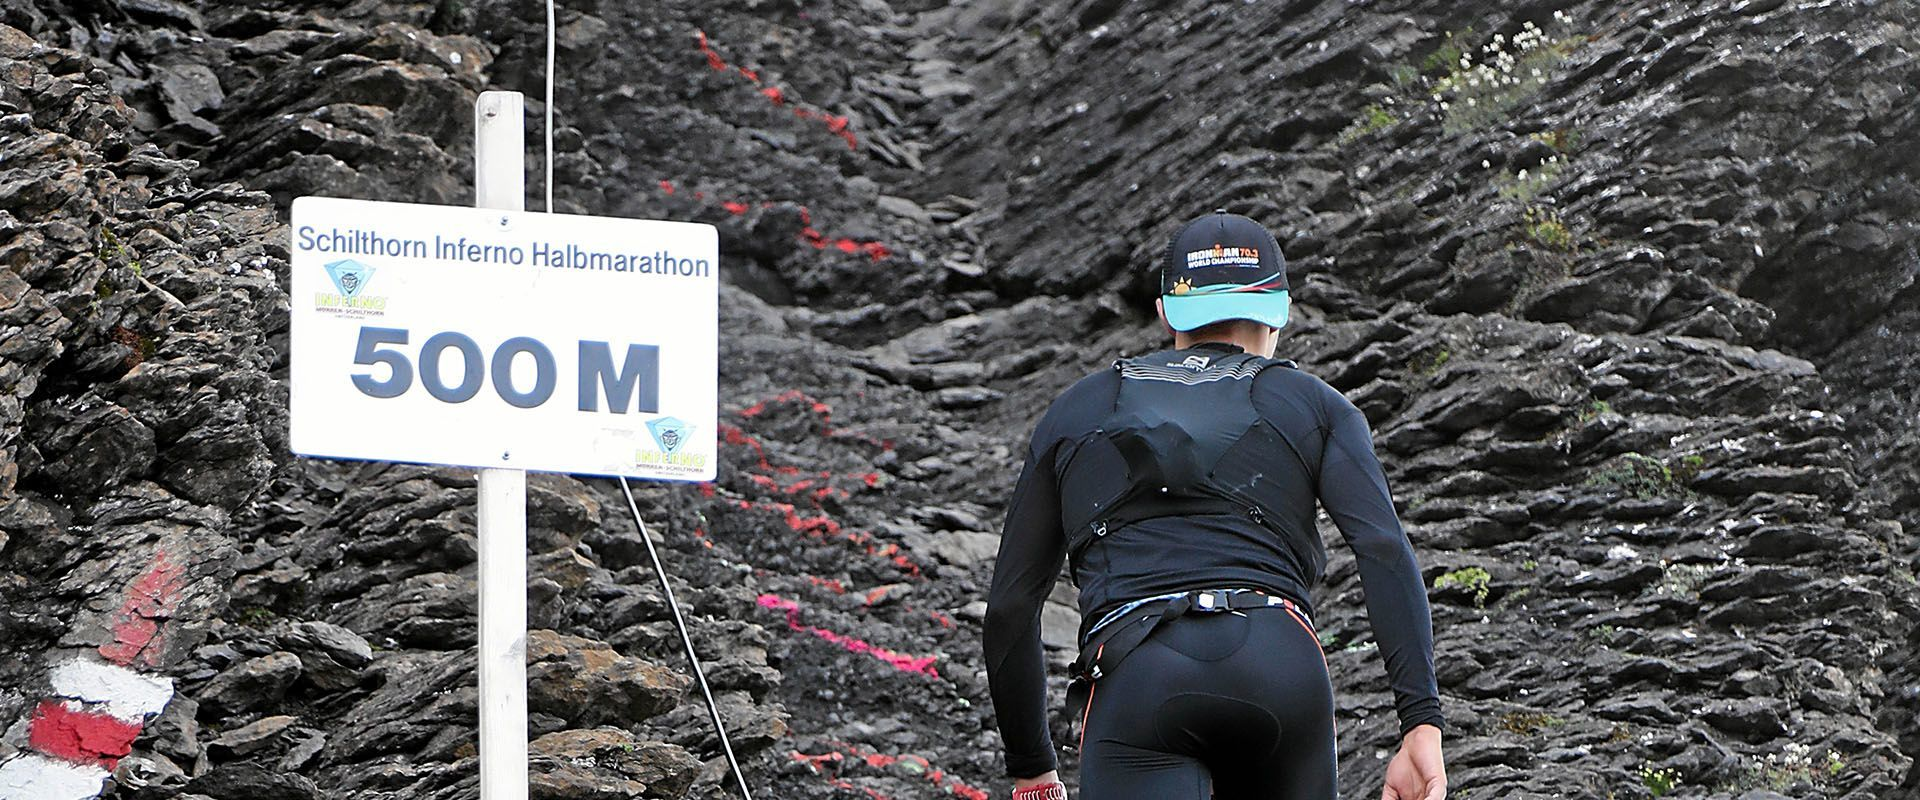 News & Media - INFERNO TRIATHLON - Mürren, Switzerland